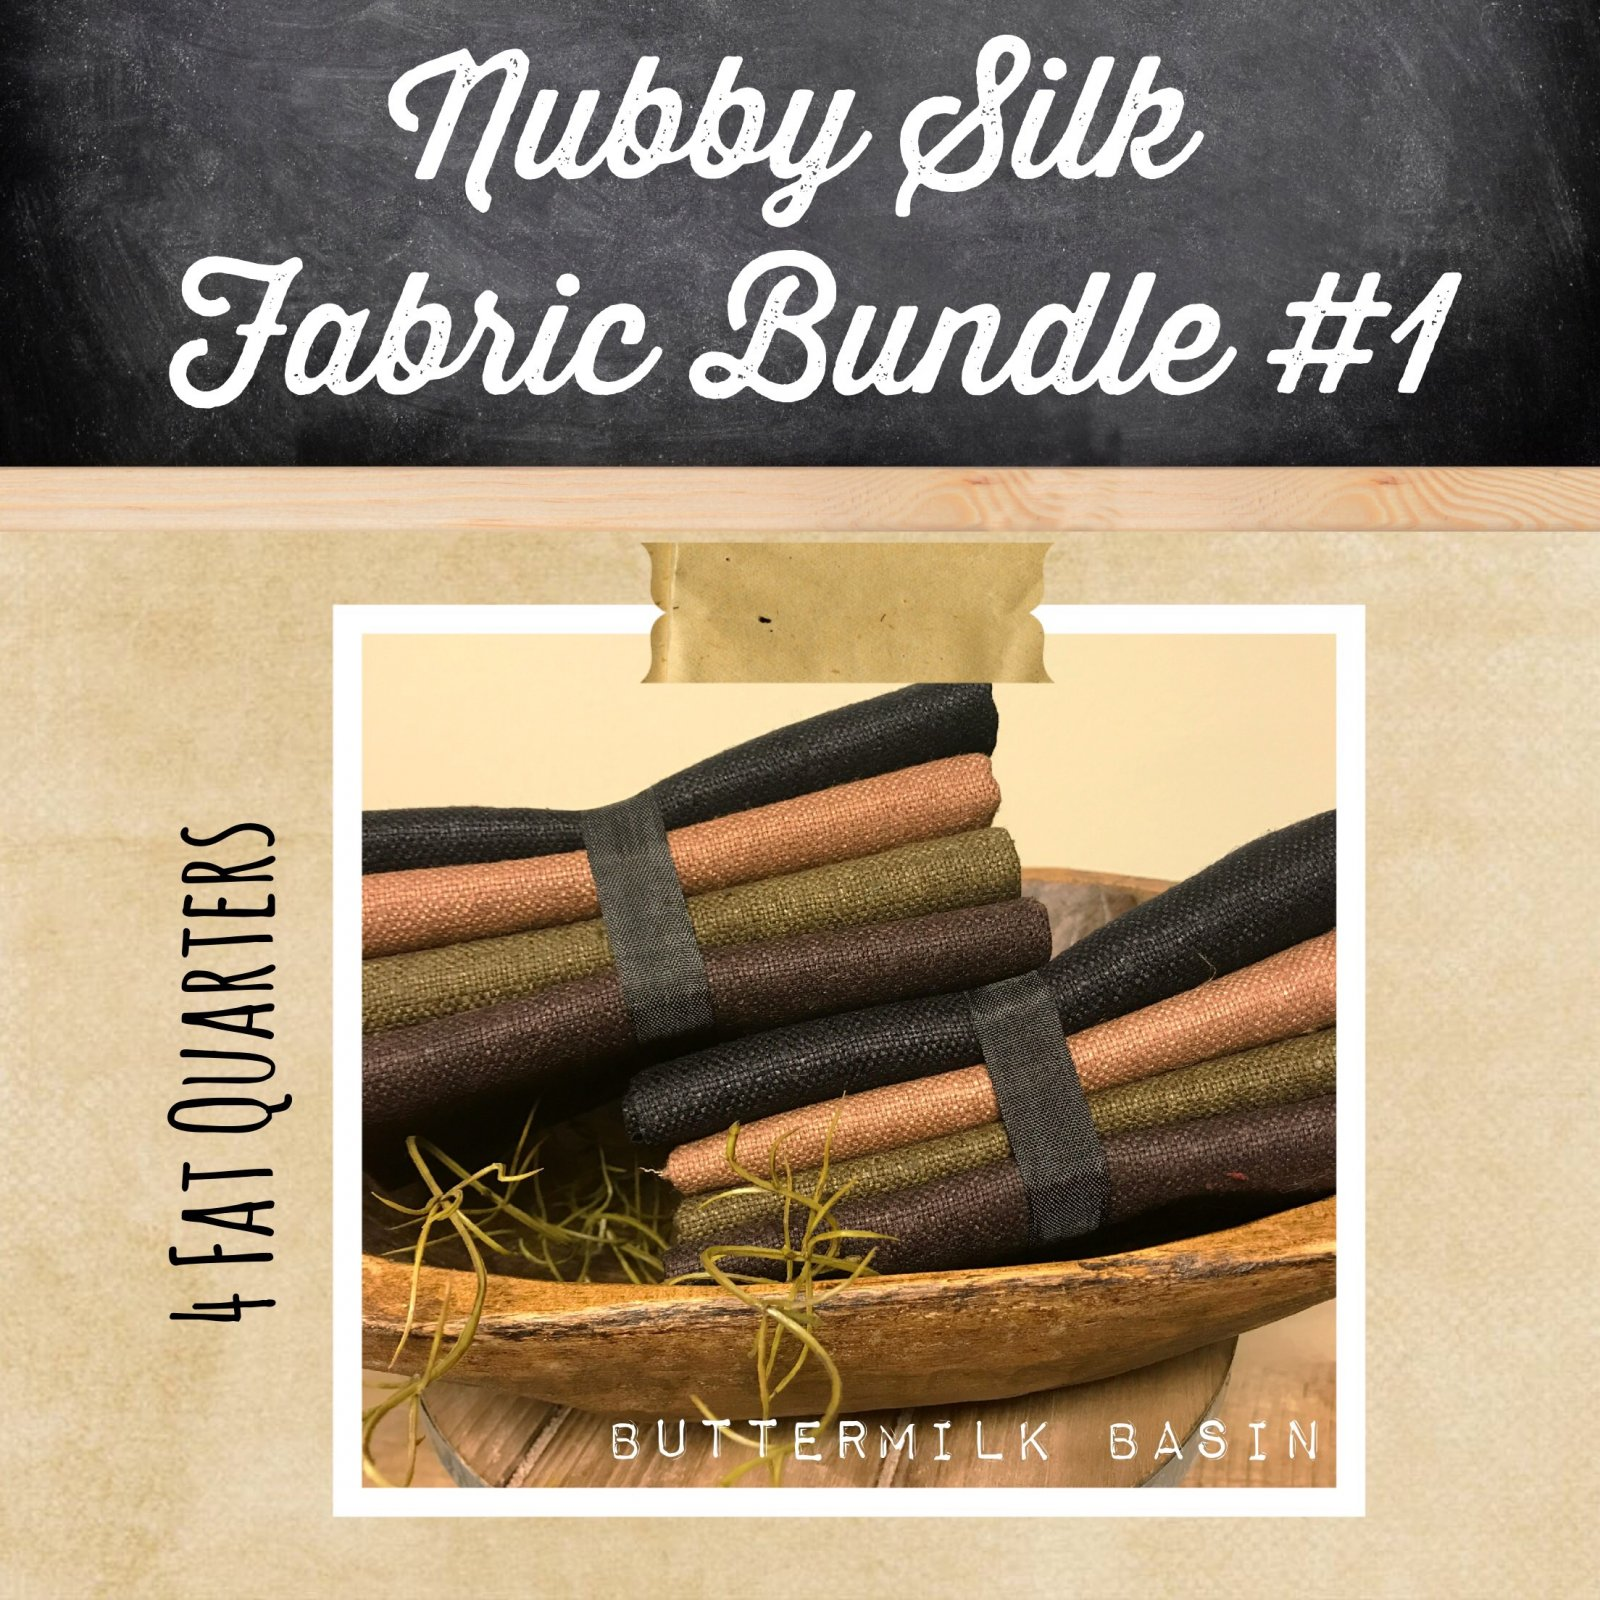 Nubby Silk Fabric Bundle #1